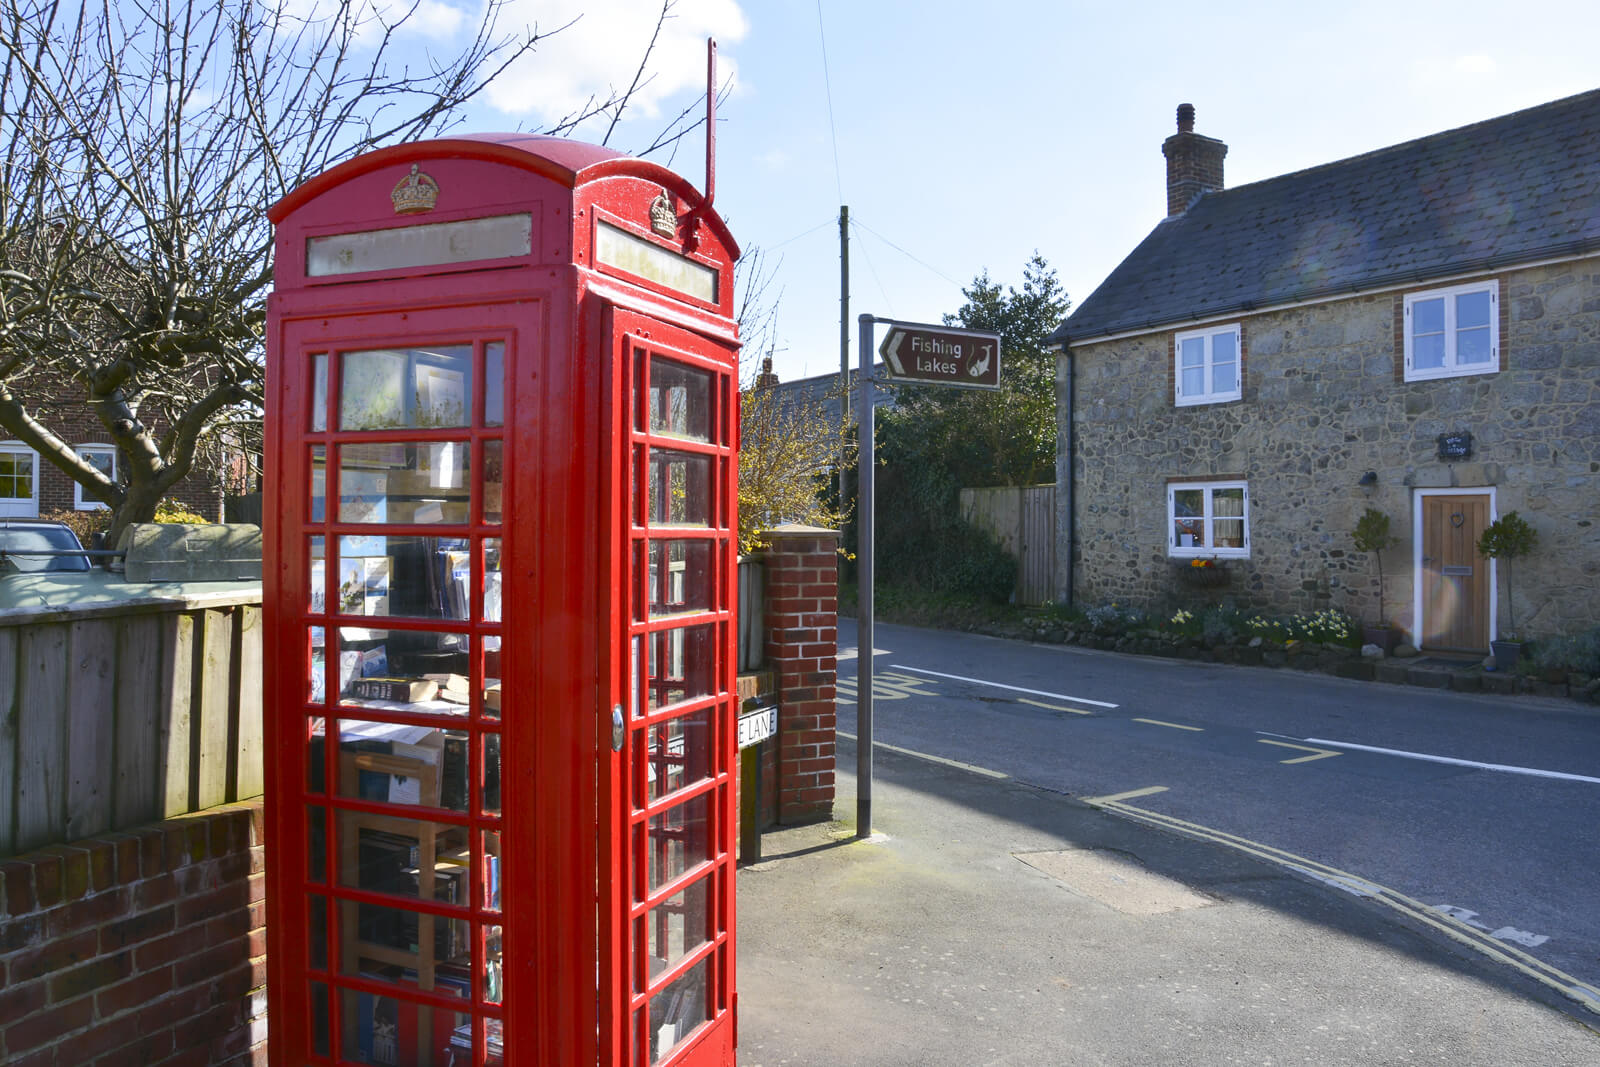 20150322 DSC_0509 Whitwell Telephone Book Box